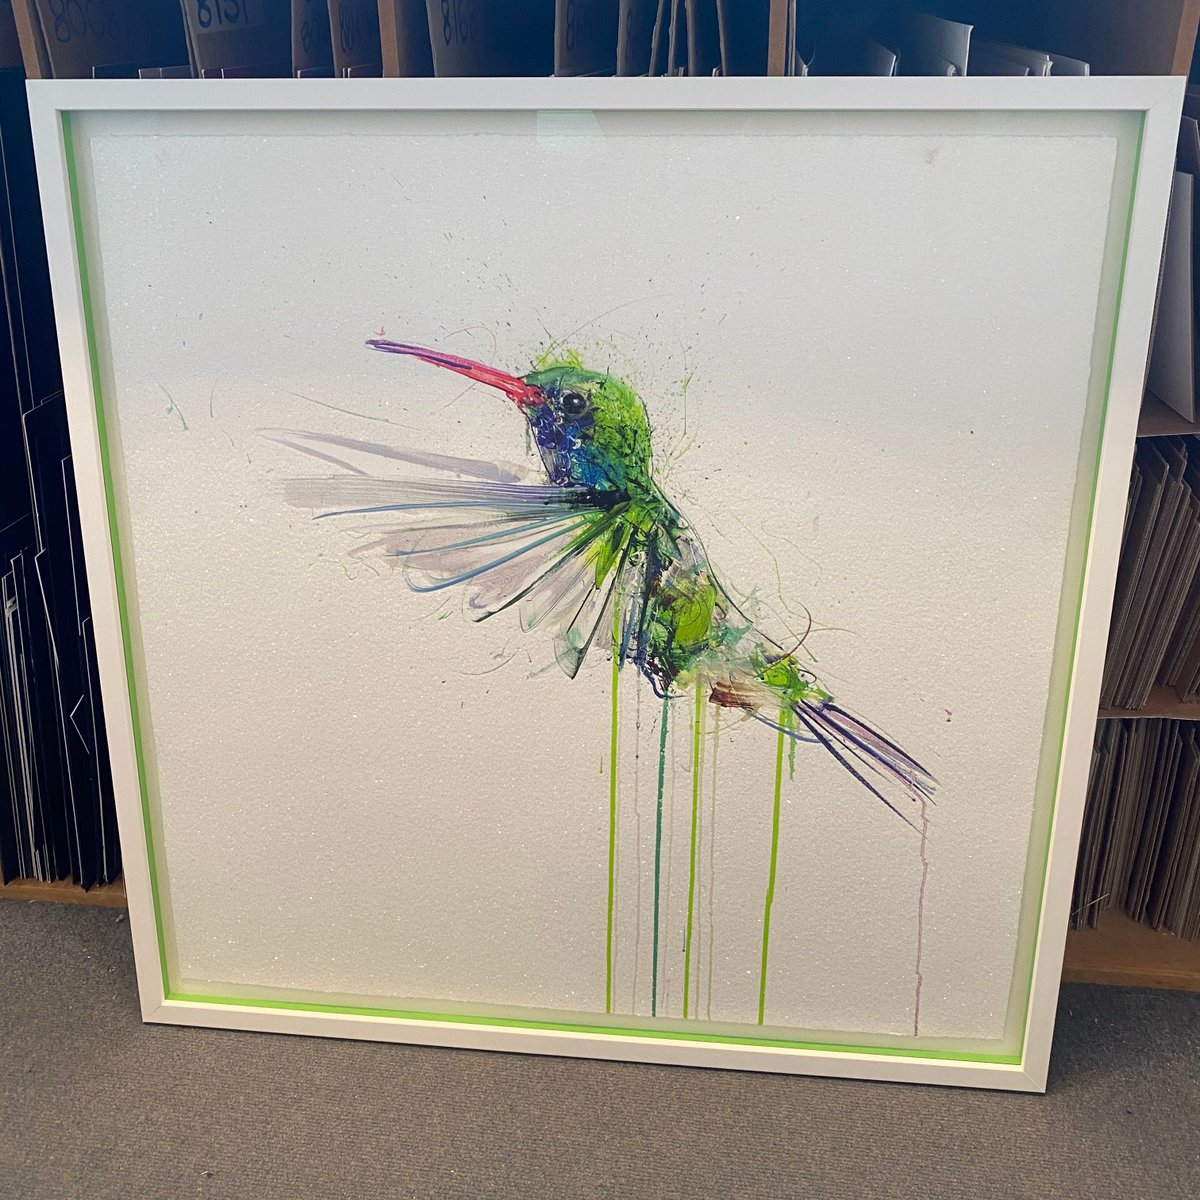 We loved framing this sparkly hummingbird. It's floated in a shallow box frame with lime green spacers, topped off with 'magic' glass #truevue  #pictureframing #custompictureframing #customframing #woodframing #bespokeframing #framingart #artframing #uckfield #sussex #wealdenpic.twitter.com/g2GwGikshc